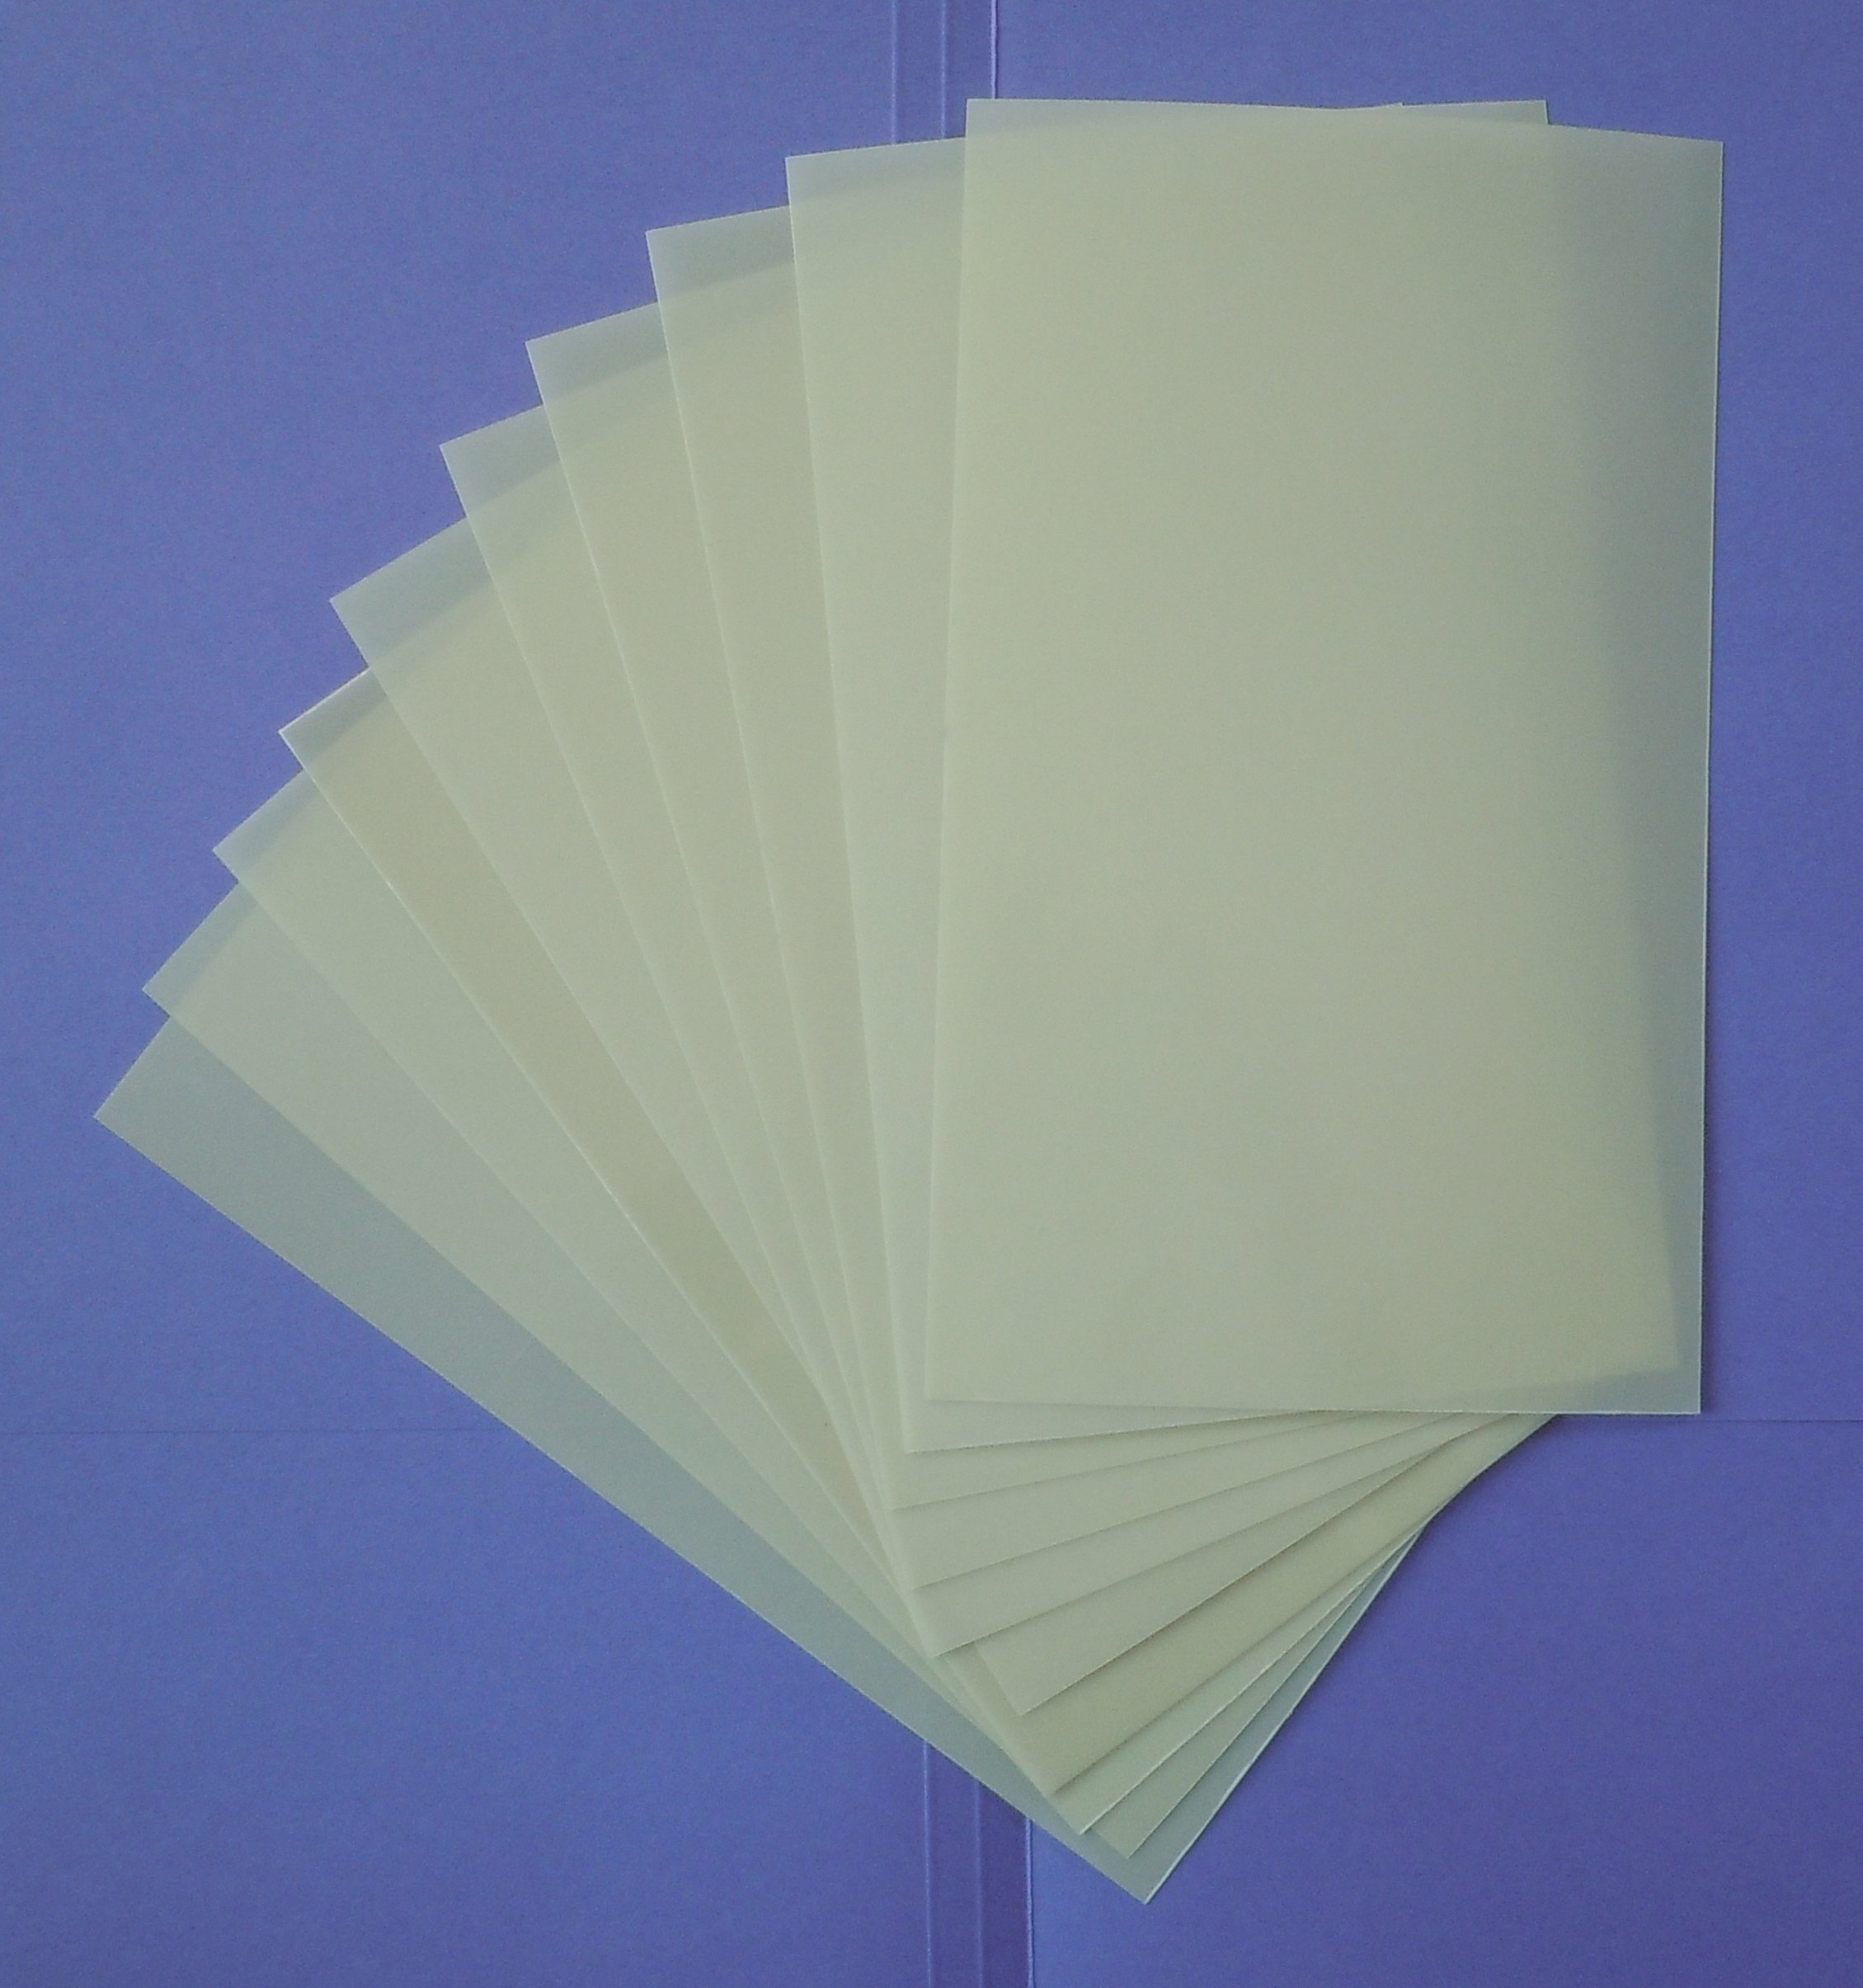 Heavy Duty 14mil Mylar Stencil Sheets - .014'' Thick Polyester Sheet 6''x10'' (10-PACK) by Liberty